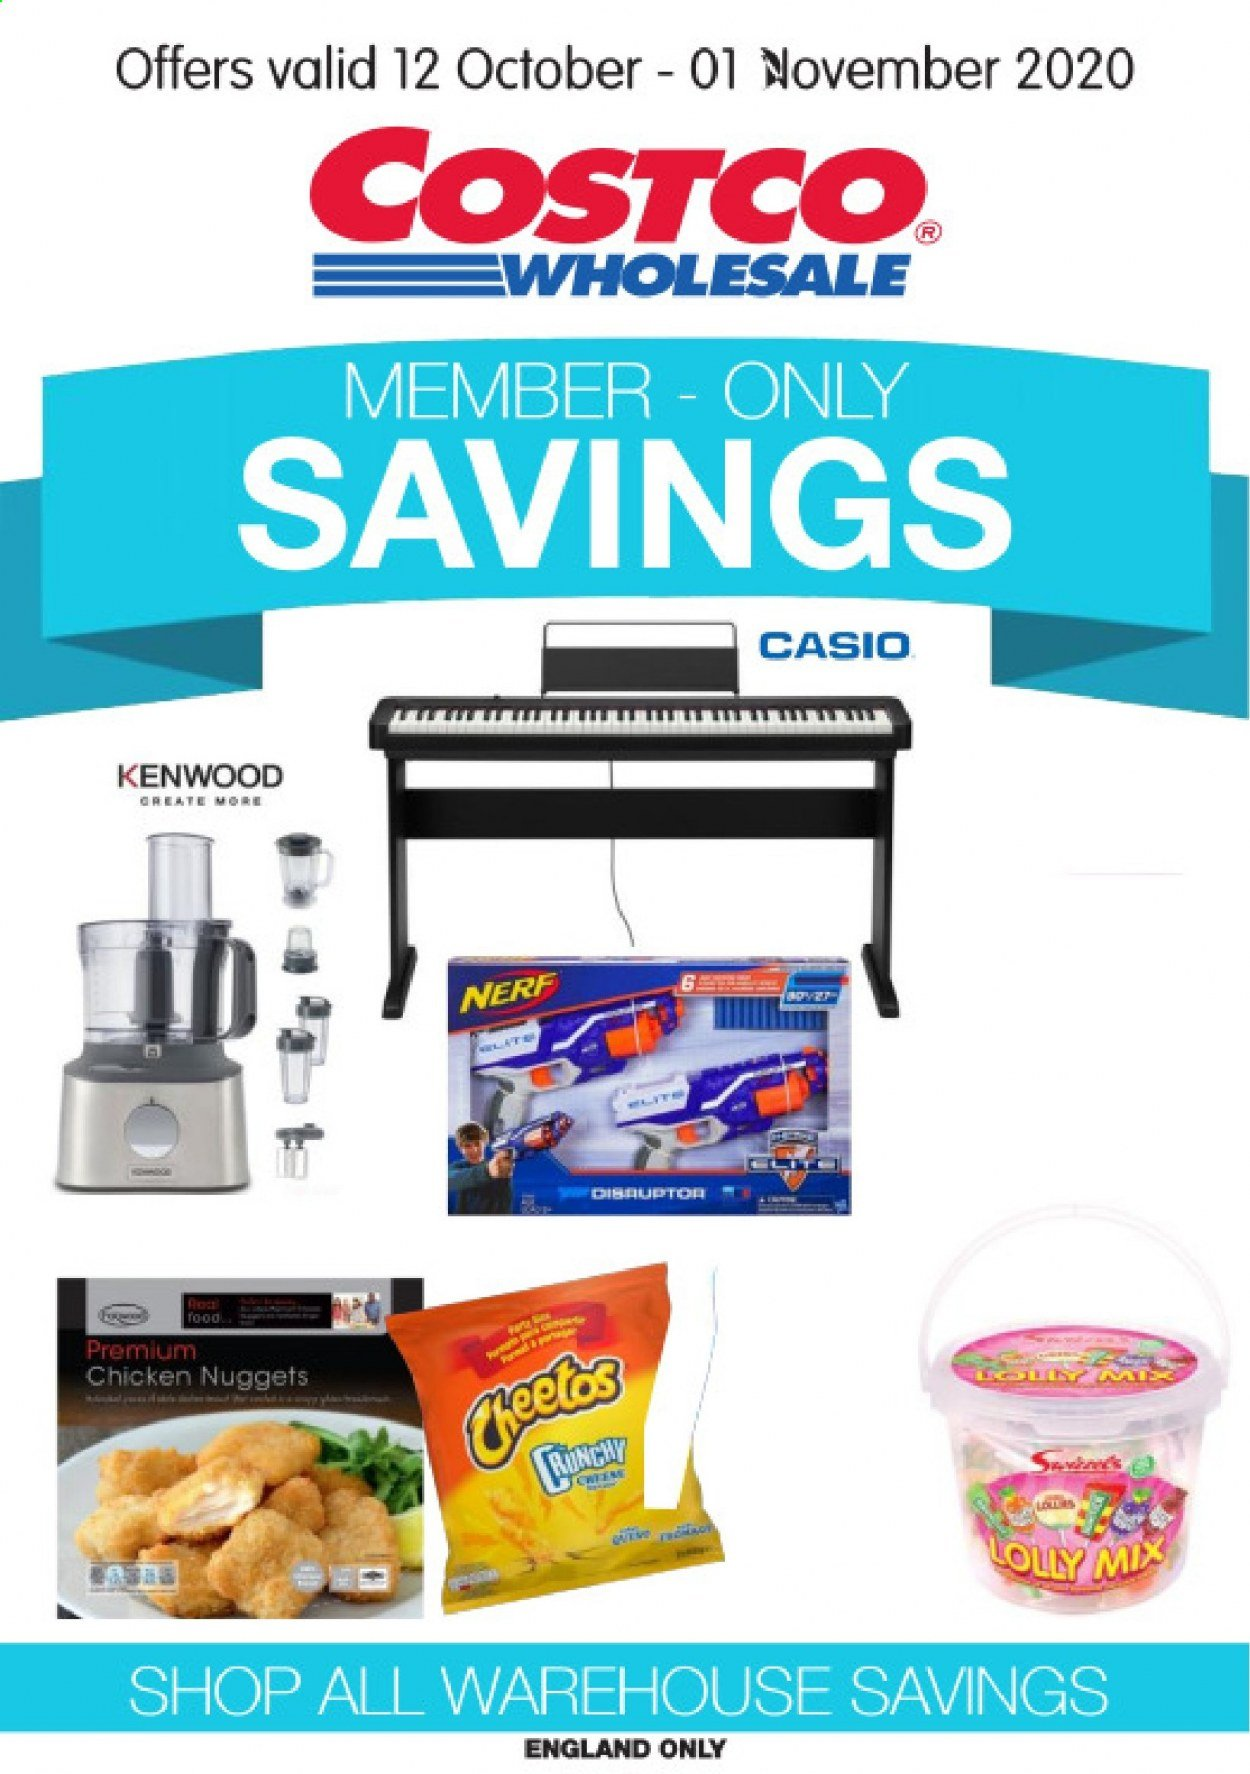 Costco offer  - 12.10.2020 - 1.11.2020 - Sales products - chicken, nuggets, lollipop, Kenwood, Nerf. Page 1.